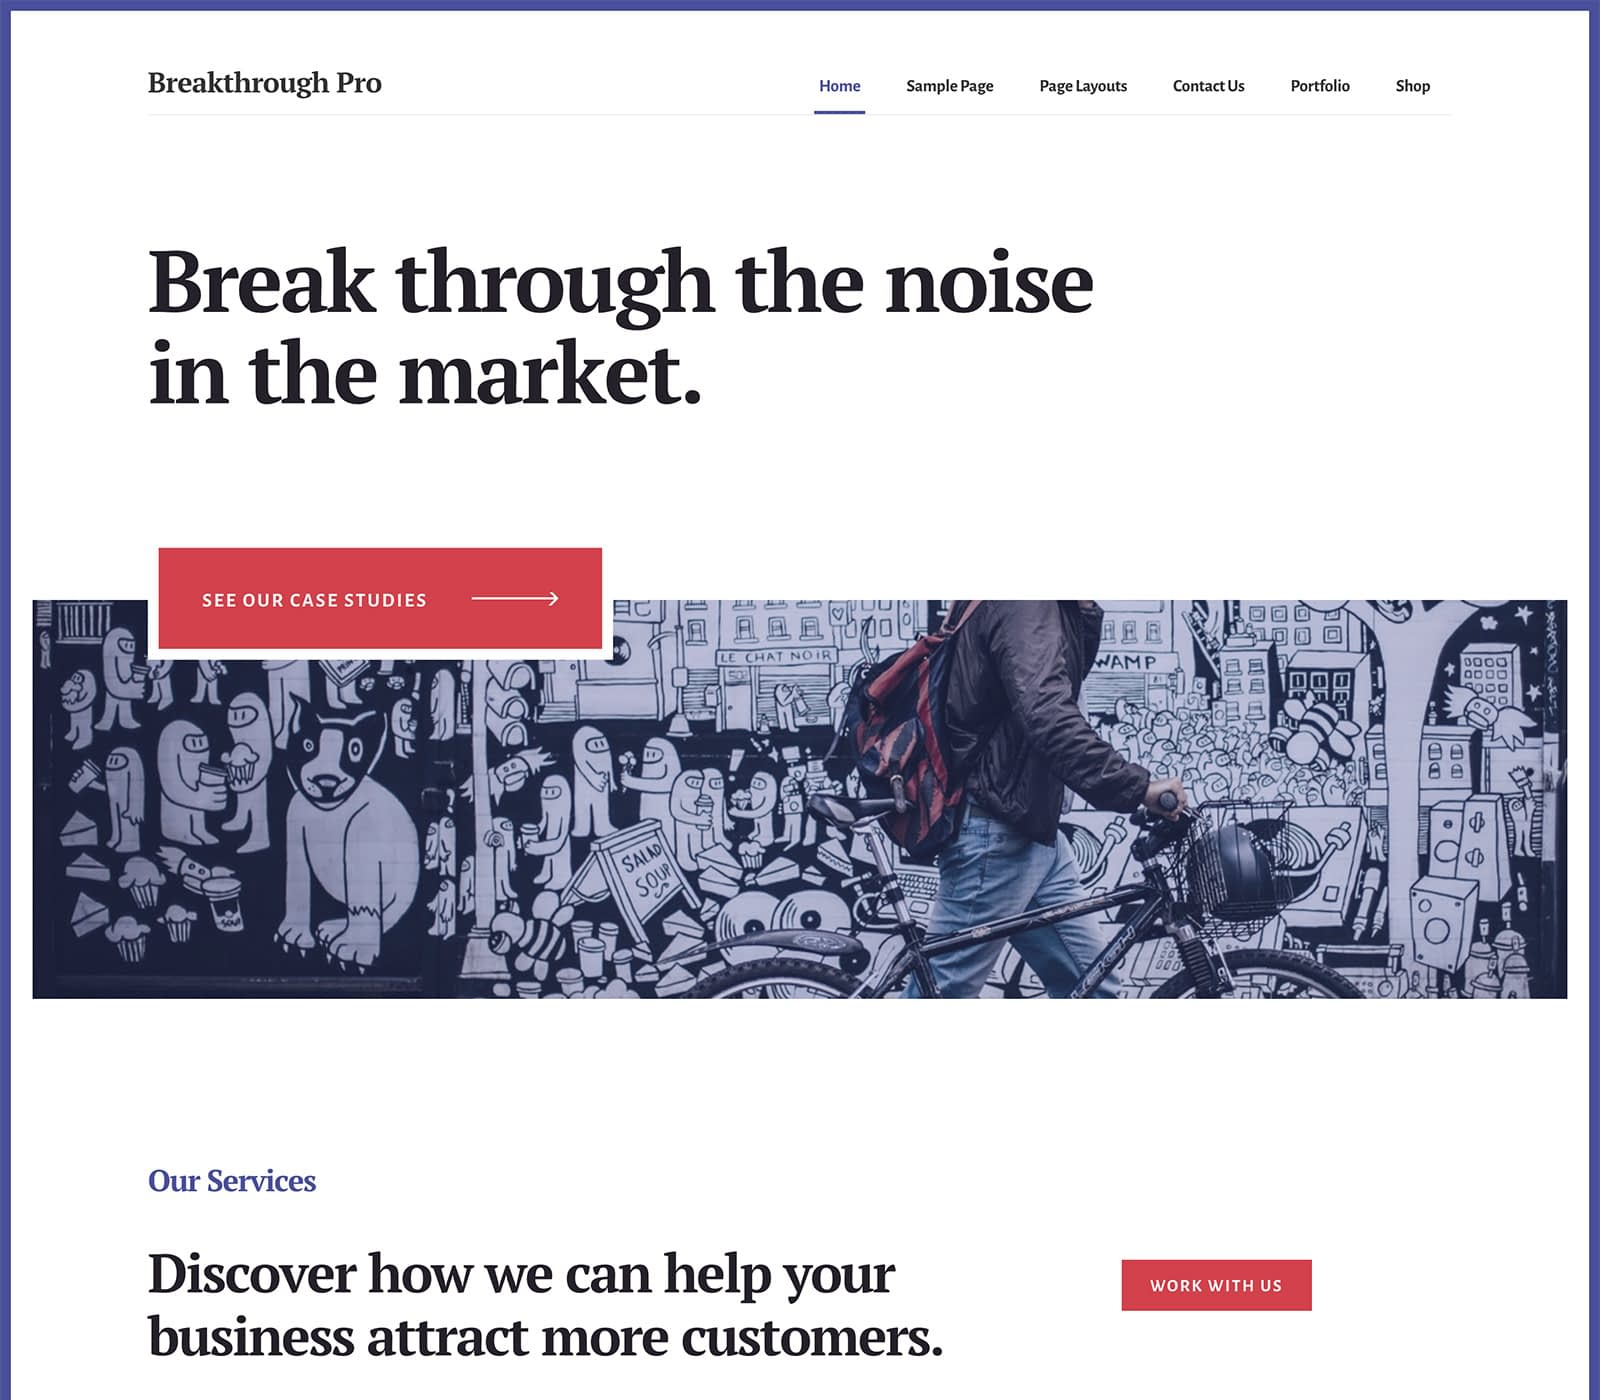 Breakthrough Pro is a popular theme for an advertising or marketing agency. It blends beautiful colors and minimal design. It's sleek and modern. Perfect for your breakthrough moment, this design helps you demonstrate your work and services.